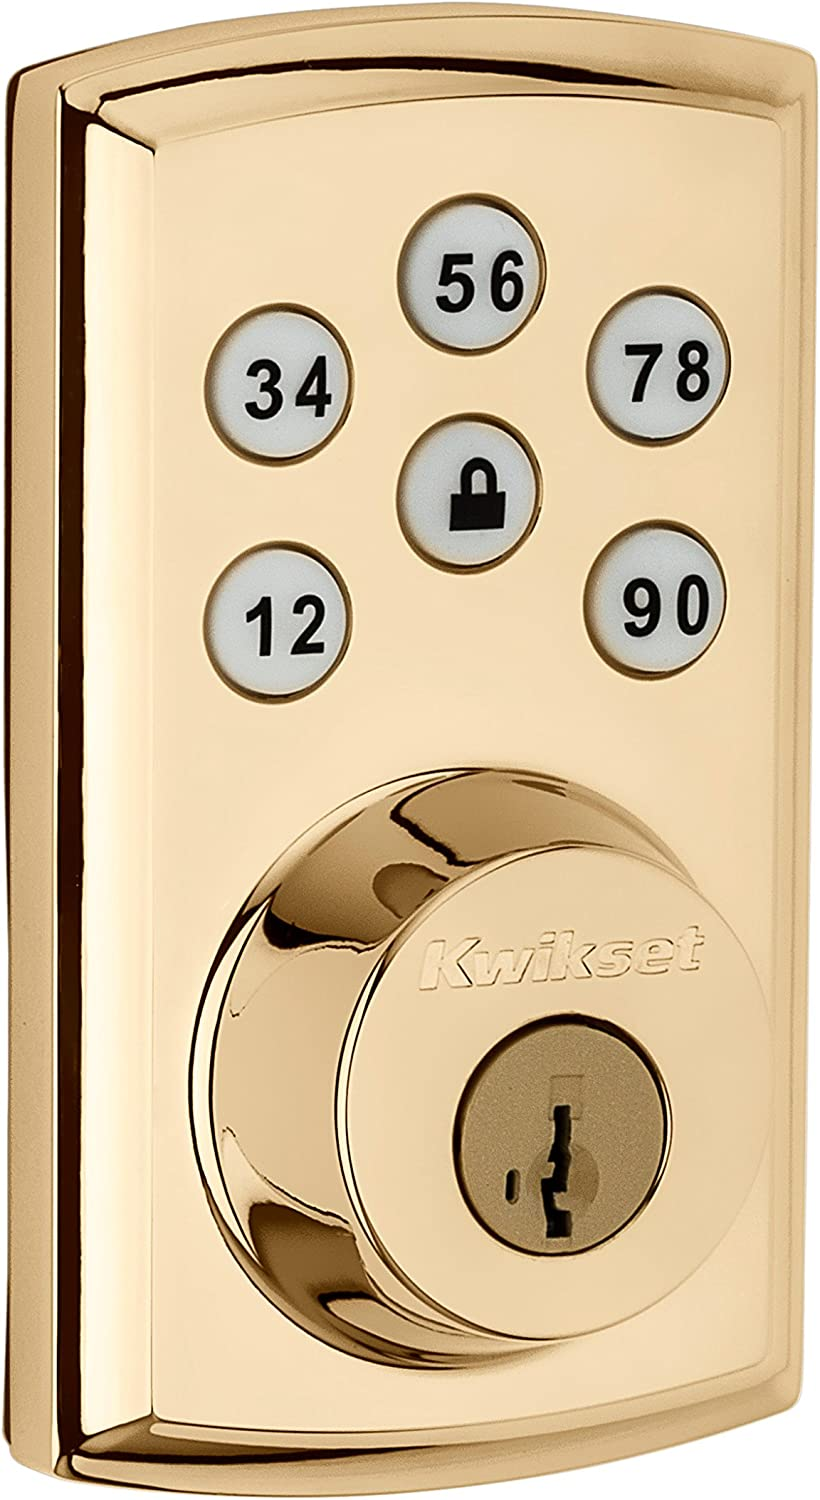 Kwikset 98880-006 SmartCode 888 Smart Lock Touchpad Electronic Deadbolt Door Lock with Z-Wave Plus Featuring SmartKey Security in Polished Brass